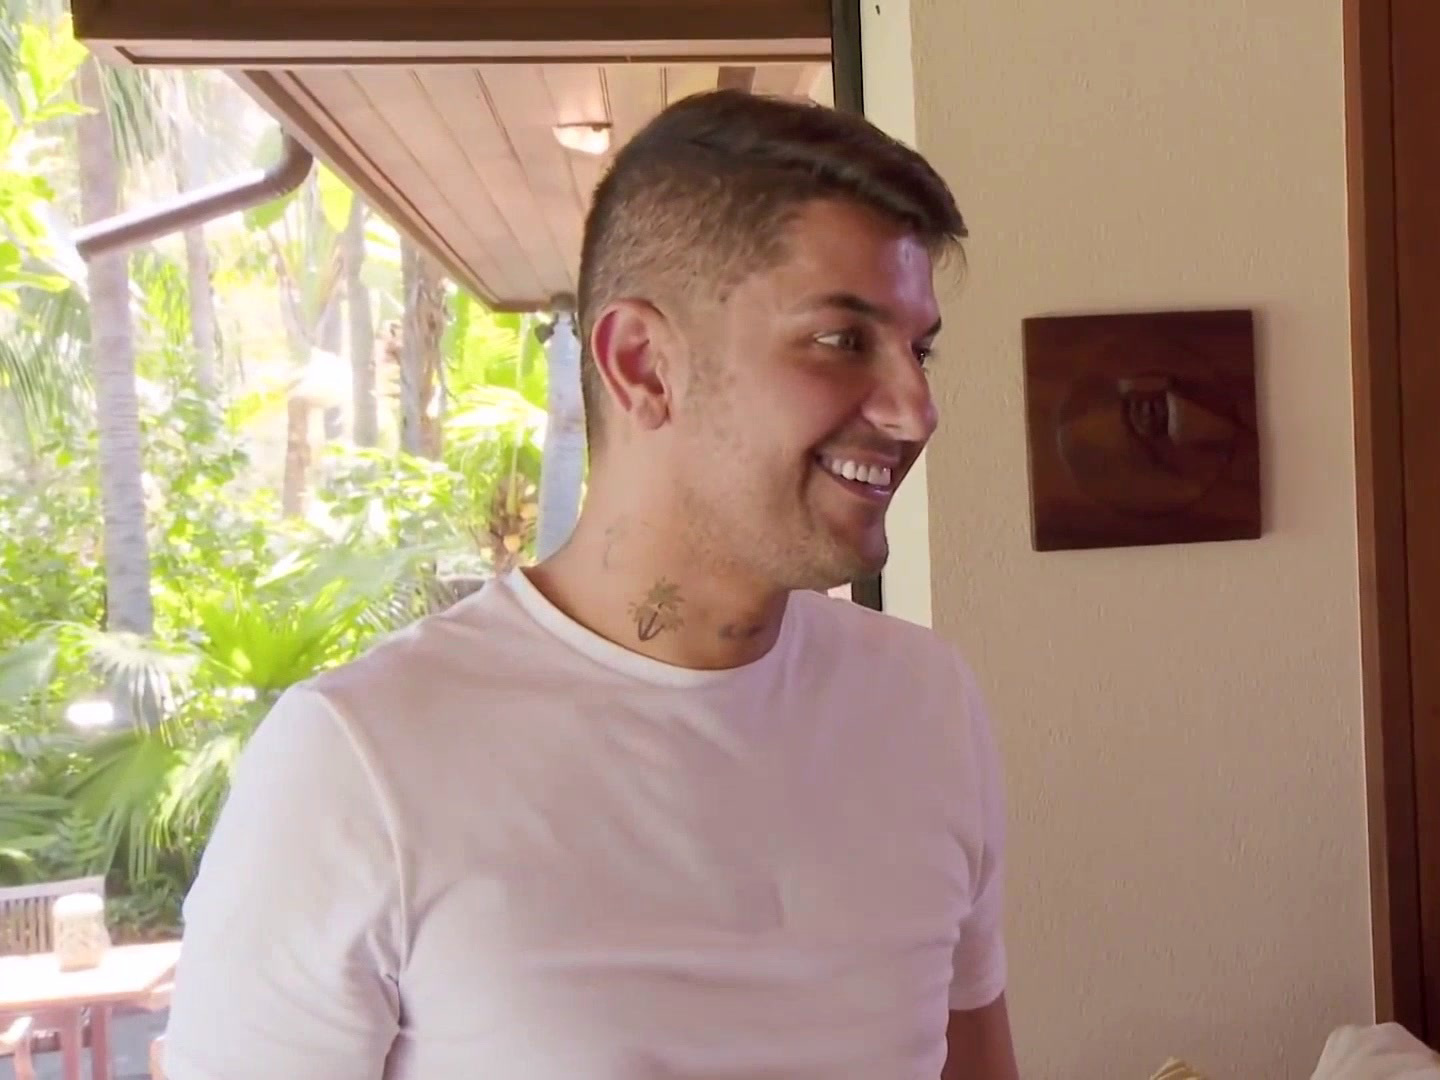 Shahs of Sunset: GG and Nema Have a Hot Tub Moment